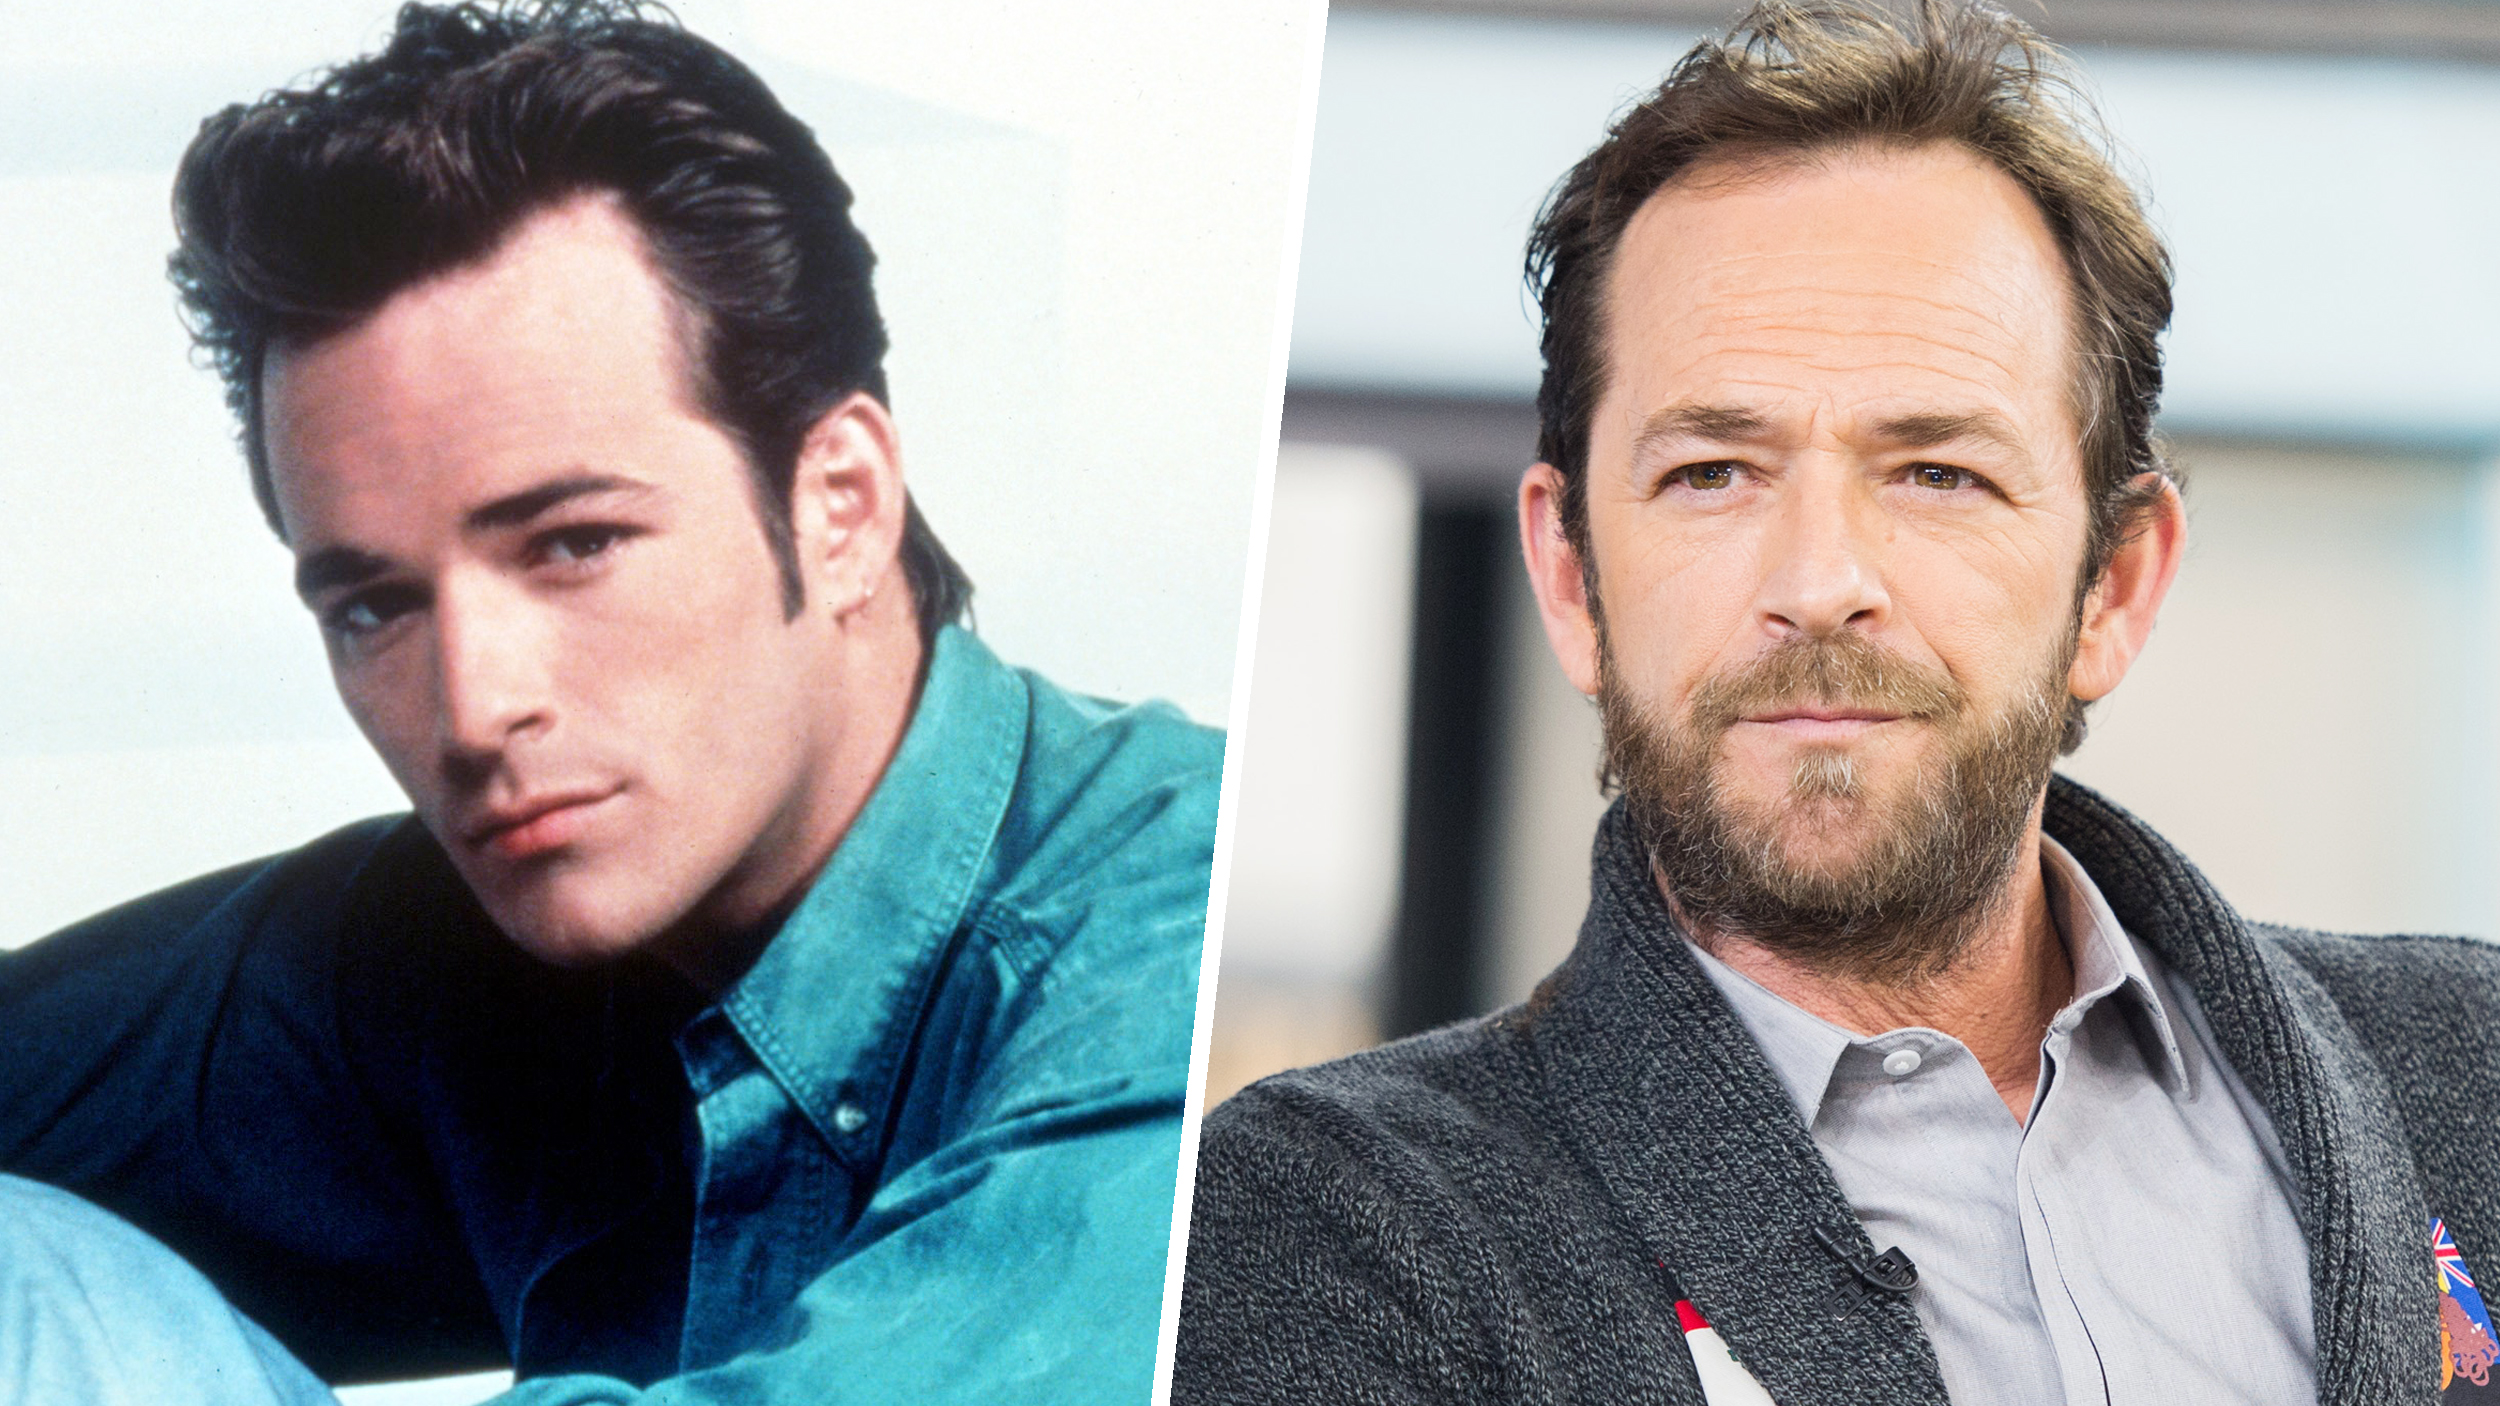 luke-perry-before-after.jpg